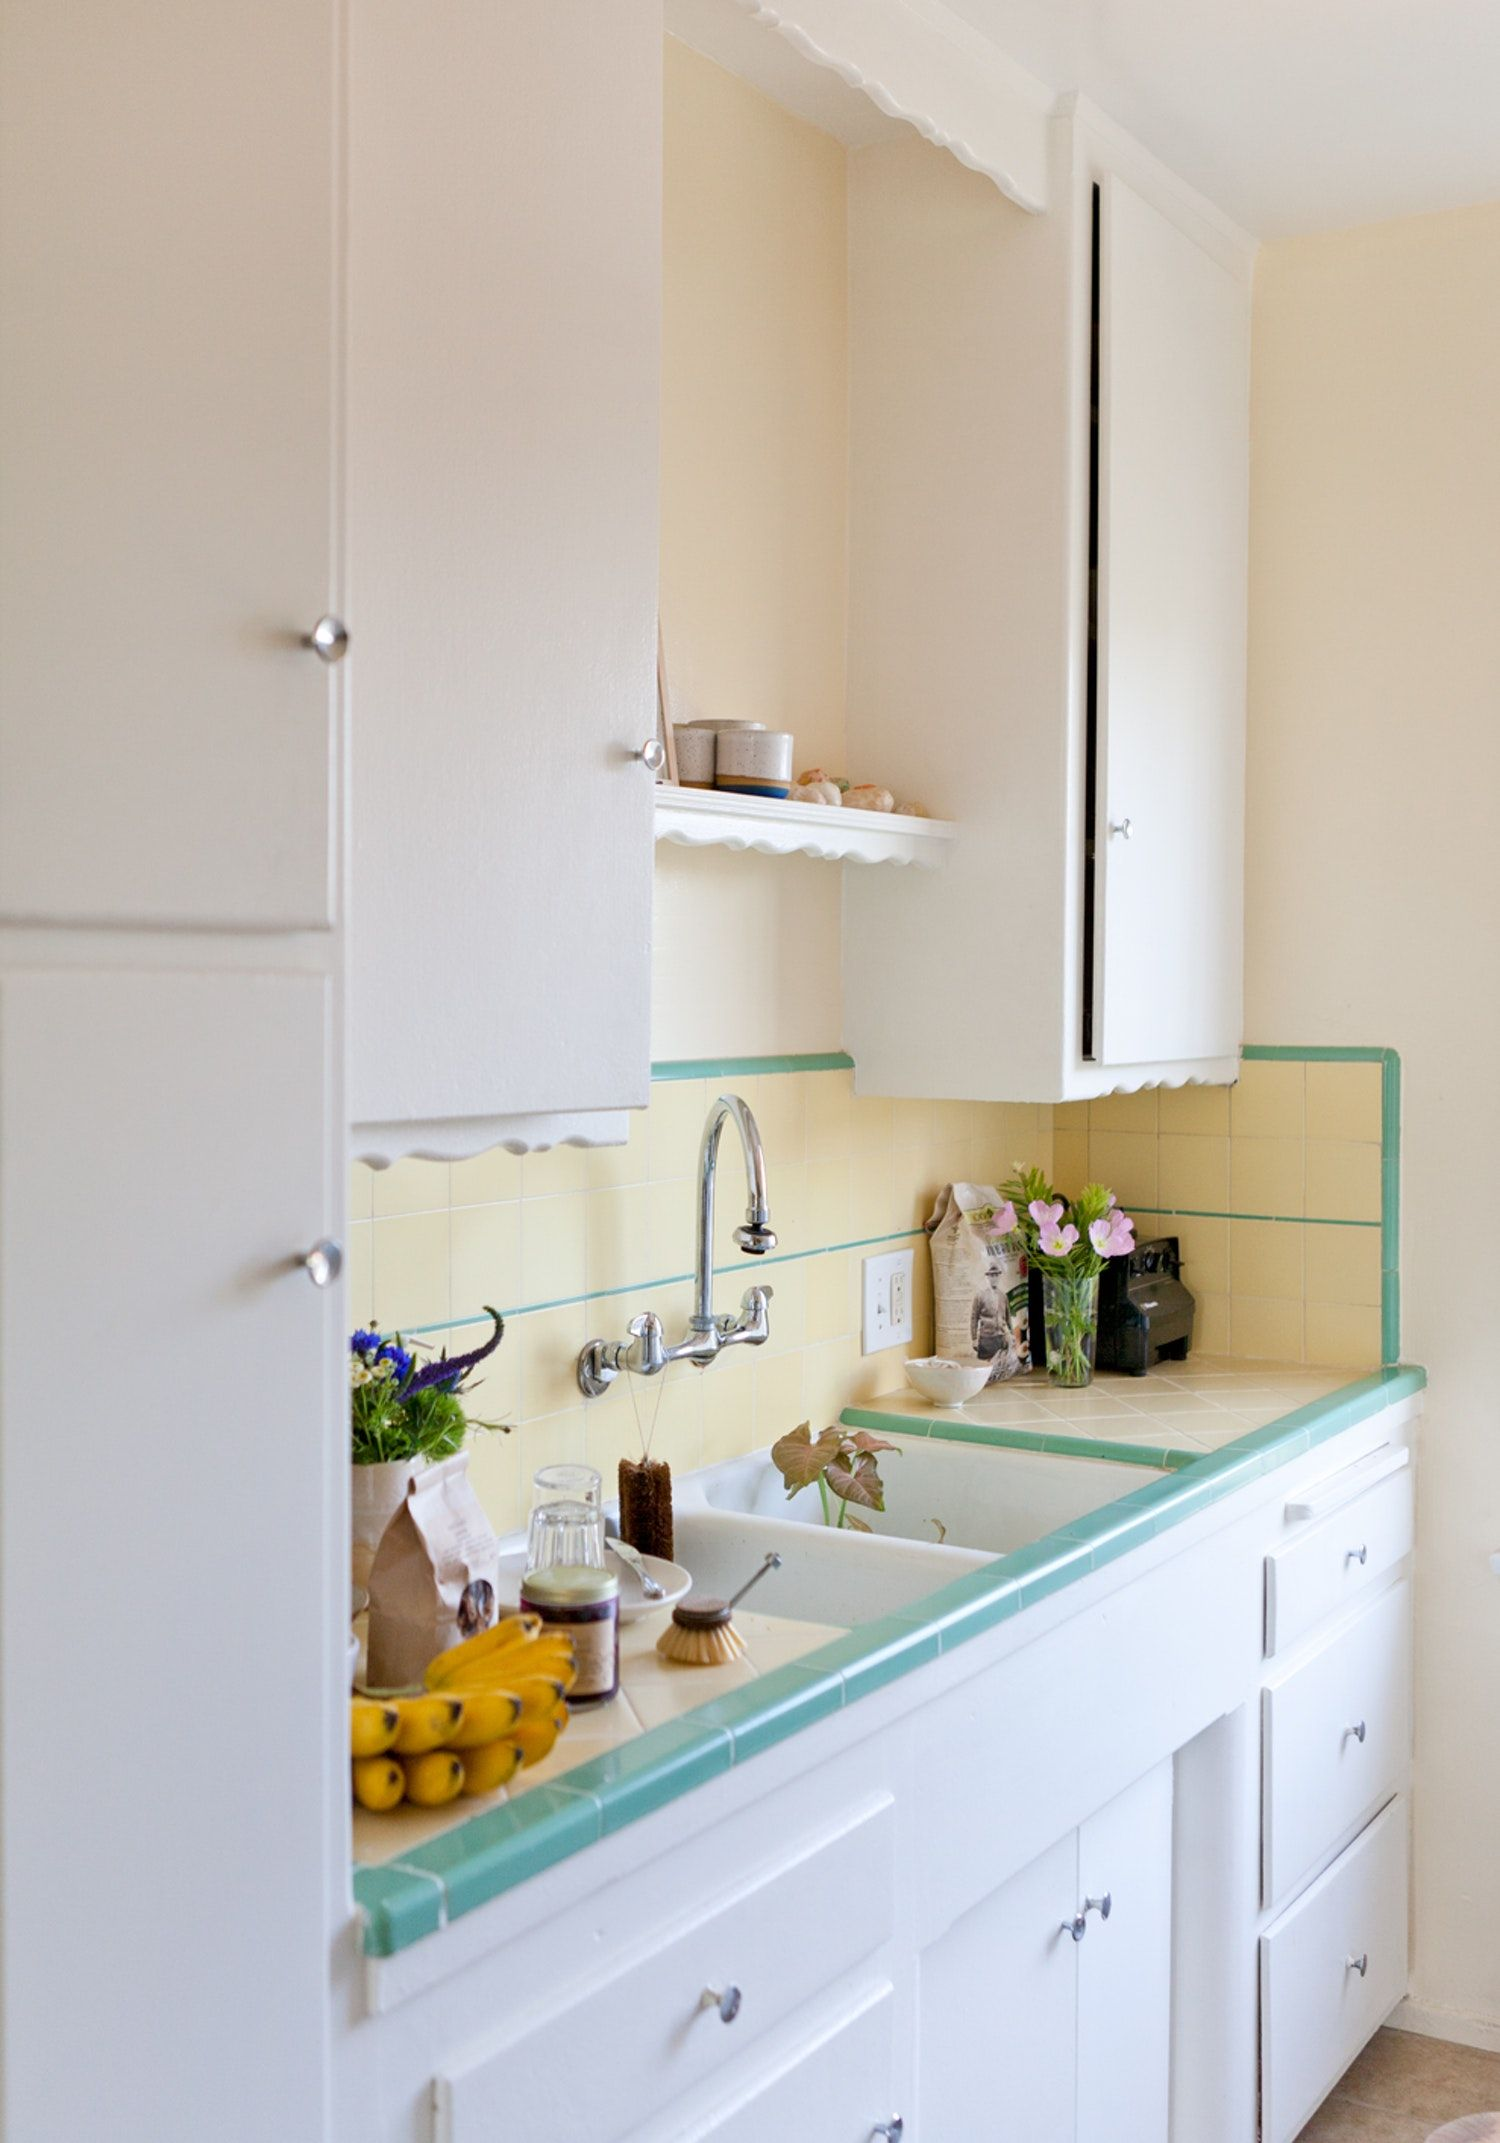 The Best Ways To Get Sticky Cooking Grease Off Cupboards Small Space Kitchen Small Kitchen Storage Clean Kitchen Cabinets